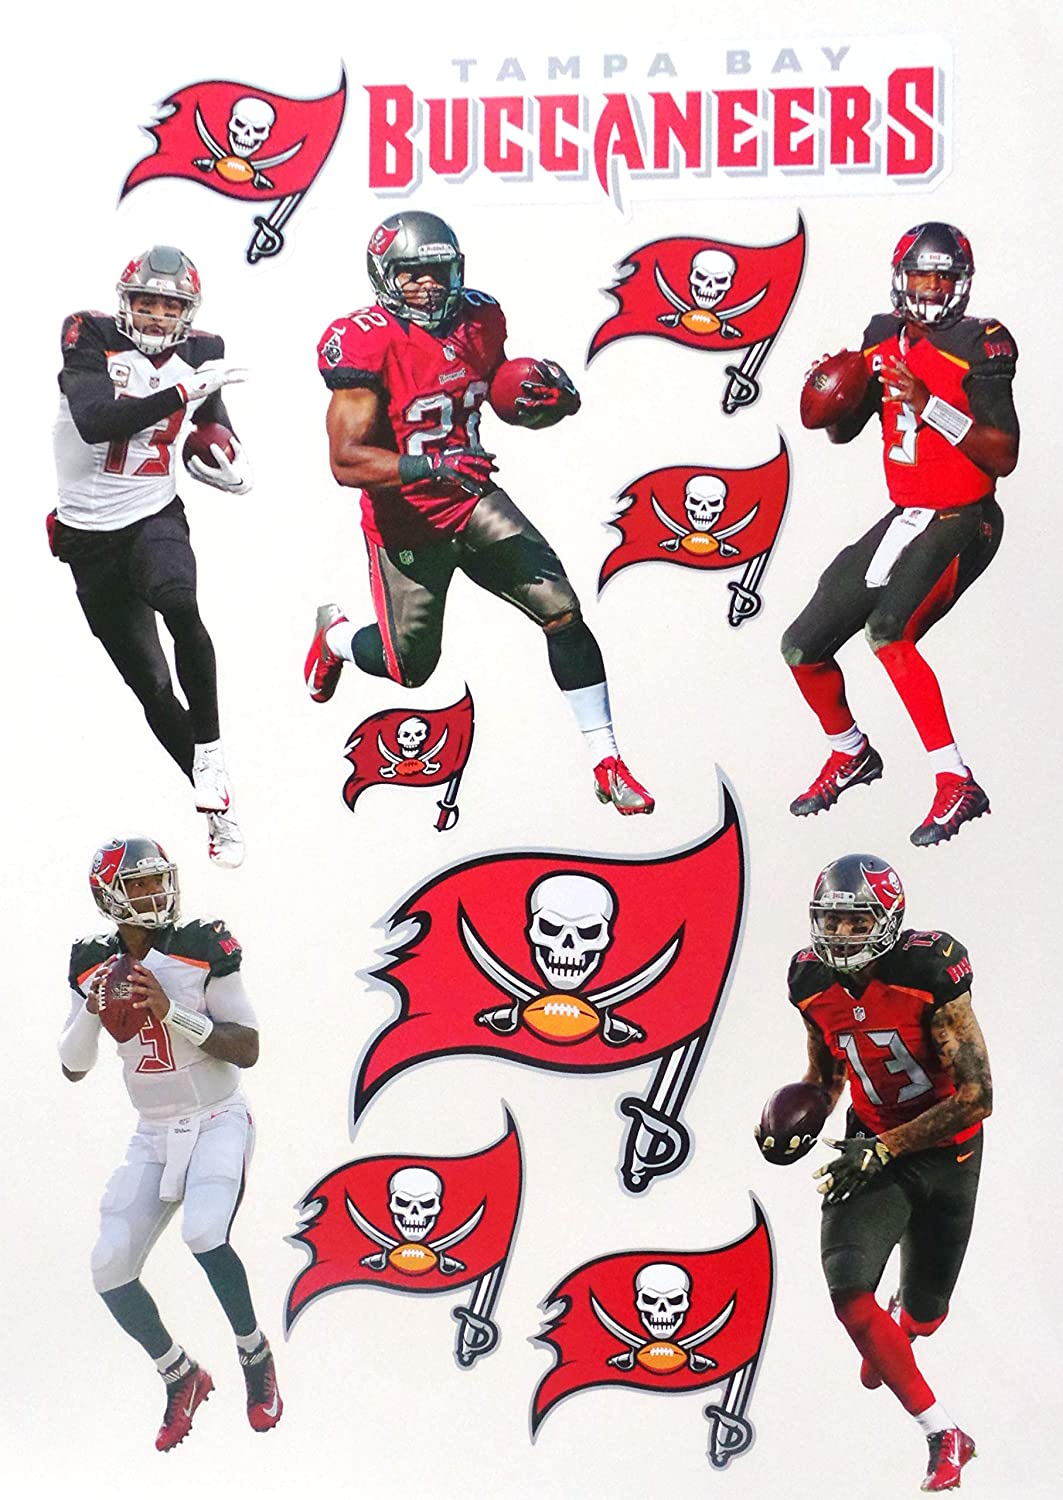 amazon com tampa bay buccaneers mini fathead team set 5 players bucs logo set official nfl vinyl wall graphics each player 7 inch arts crafts sewing bucs logo set official nfl vinyl wall